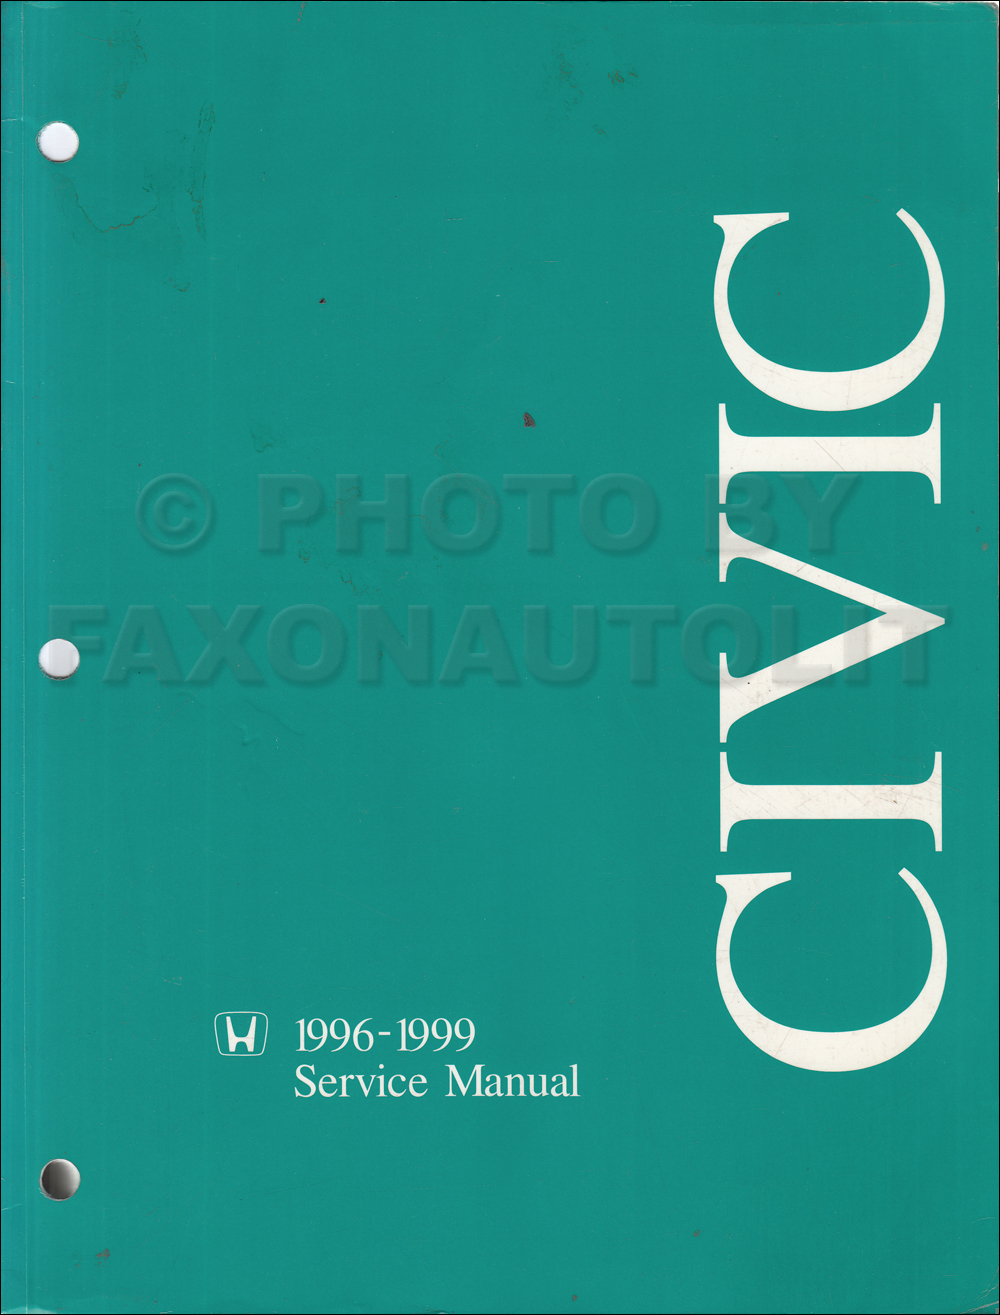 1996-2000 Honda Civic Repair Manual Original